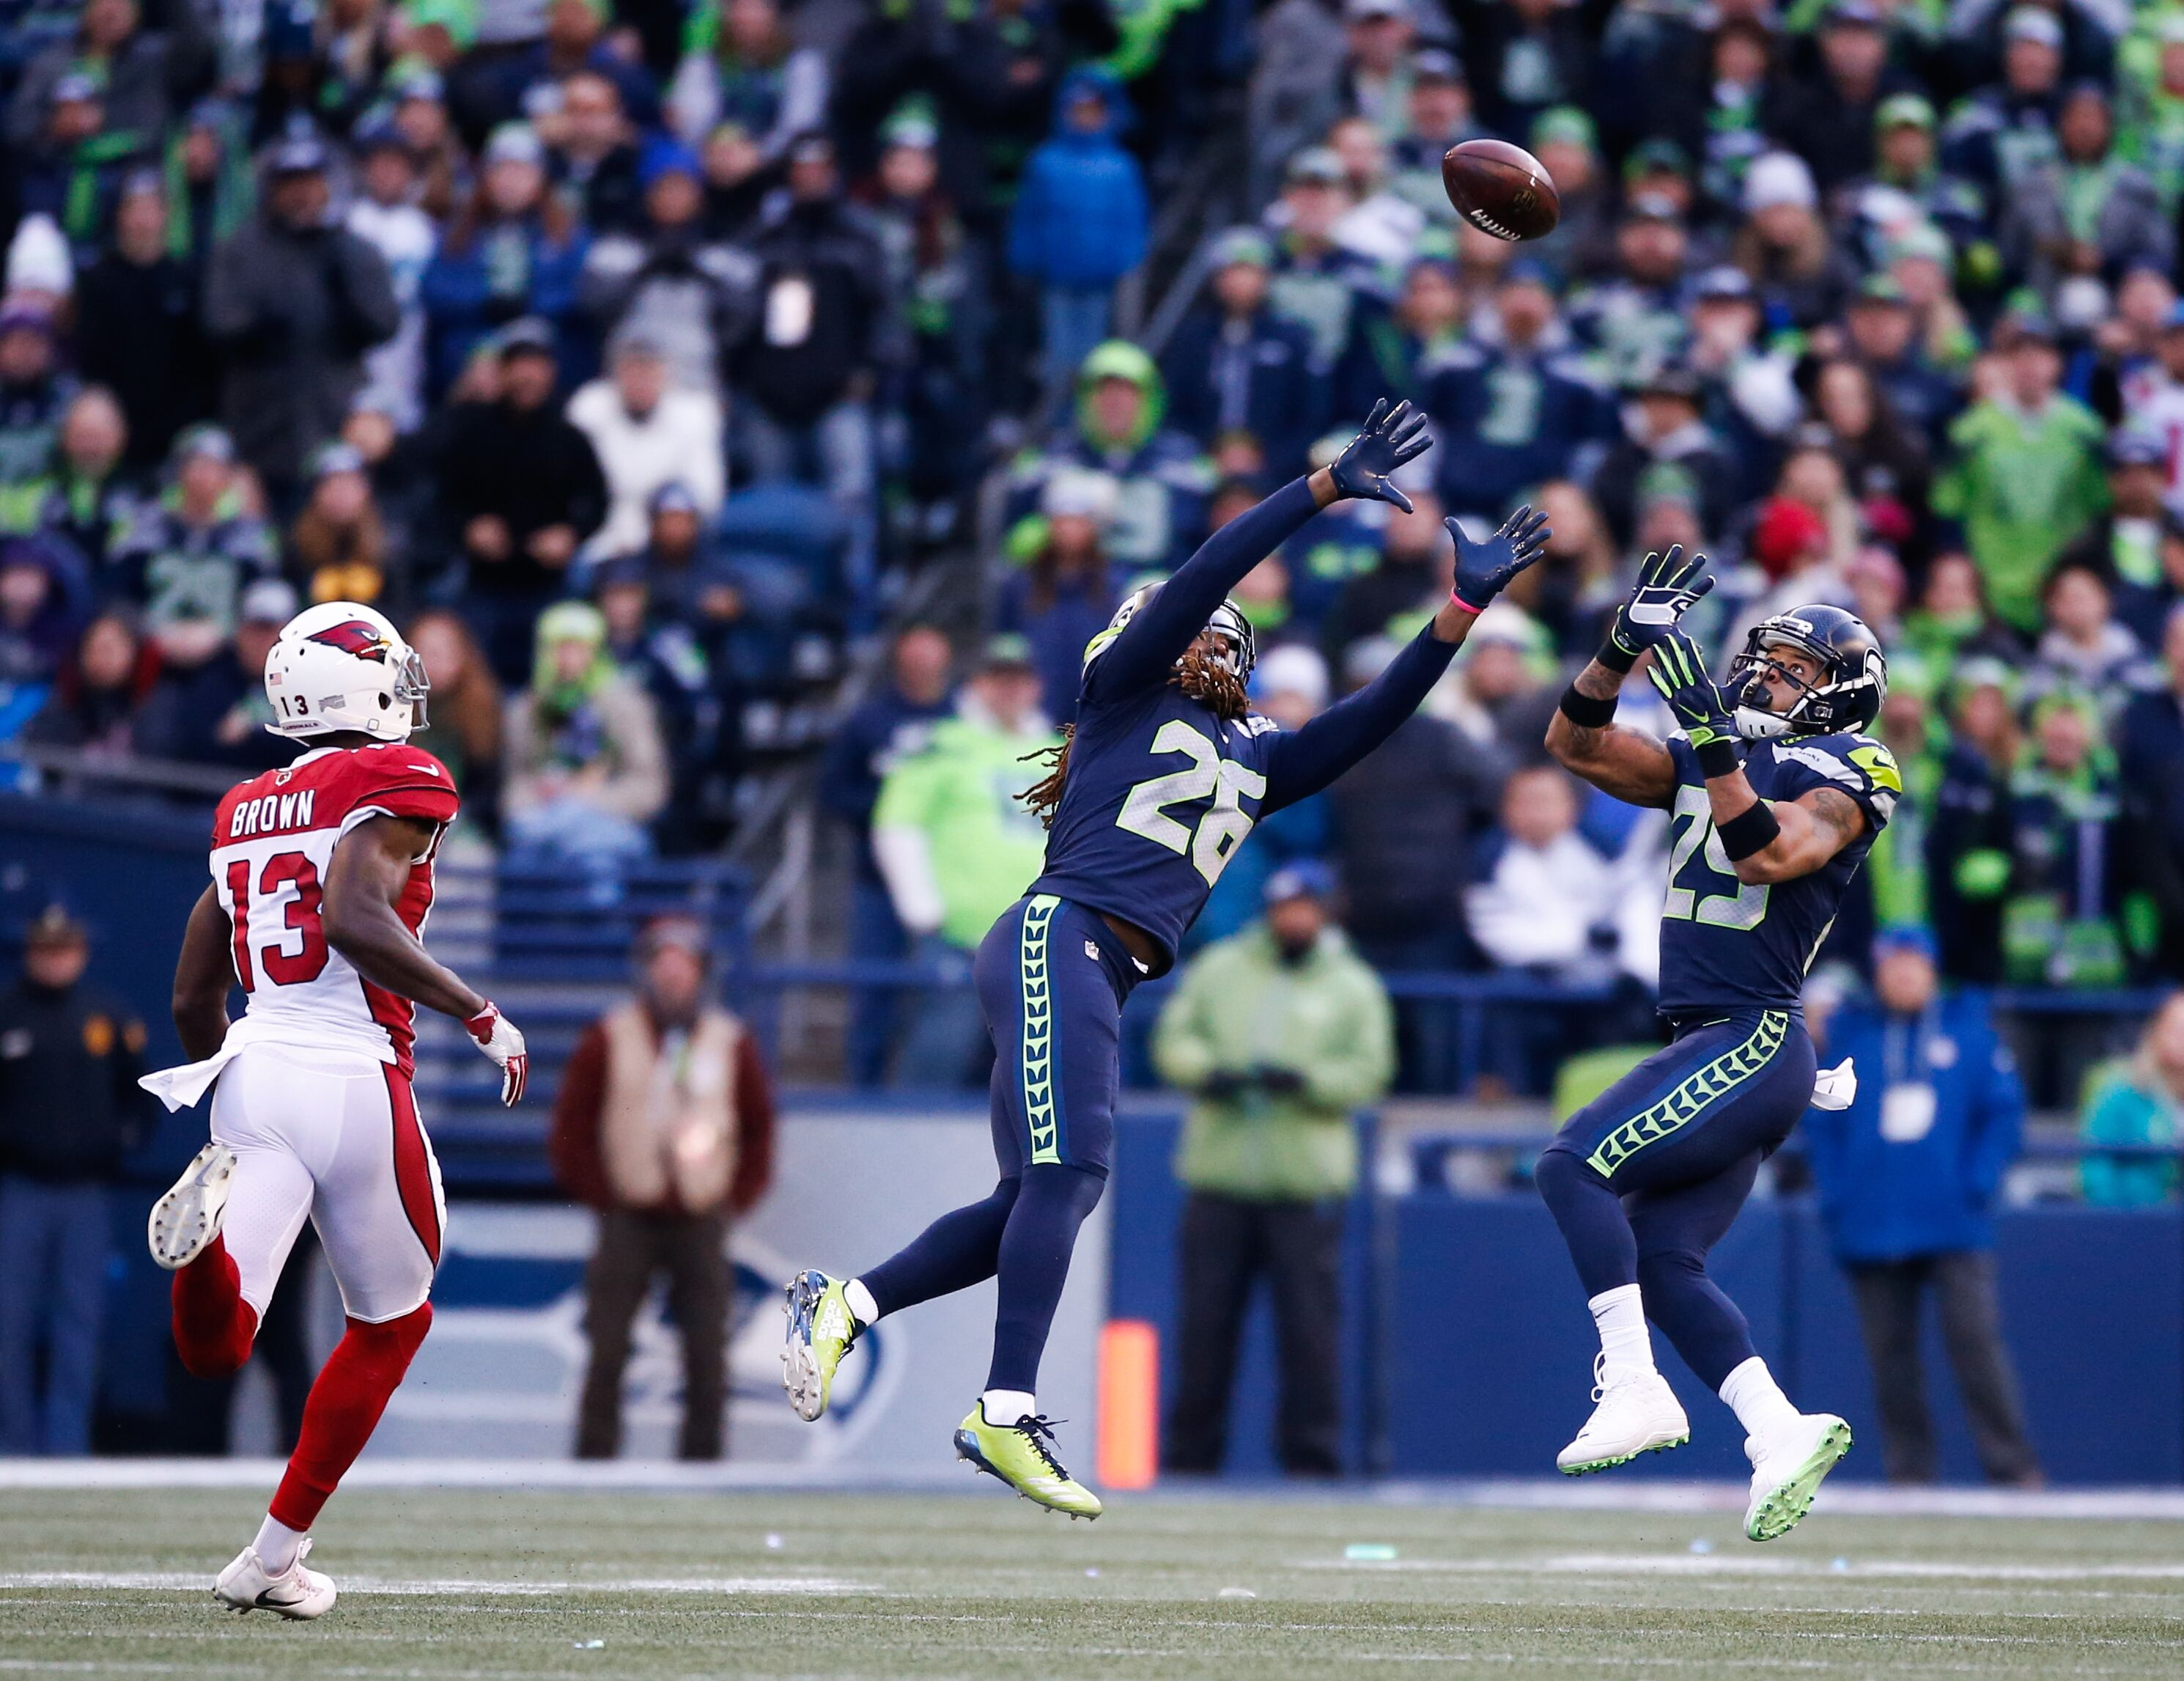 900128584-arizona-cardinals-v-seattle-seahawks.jpg